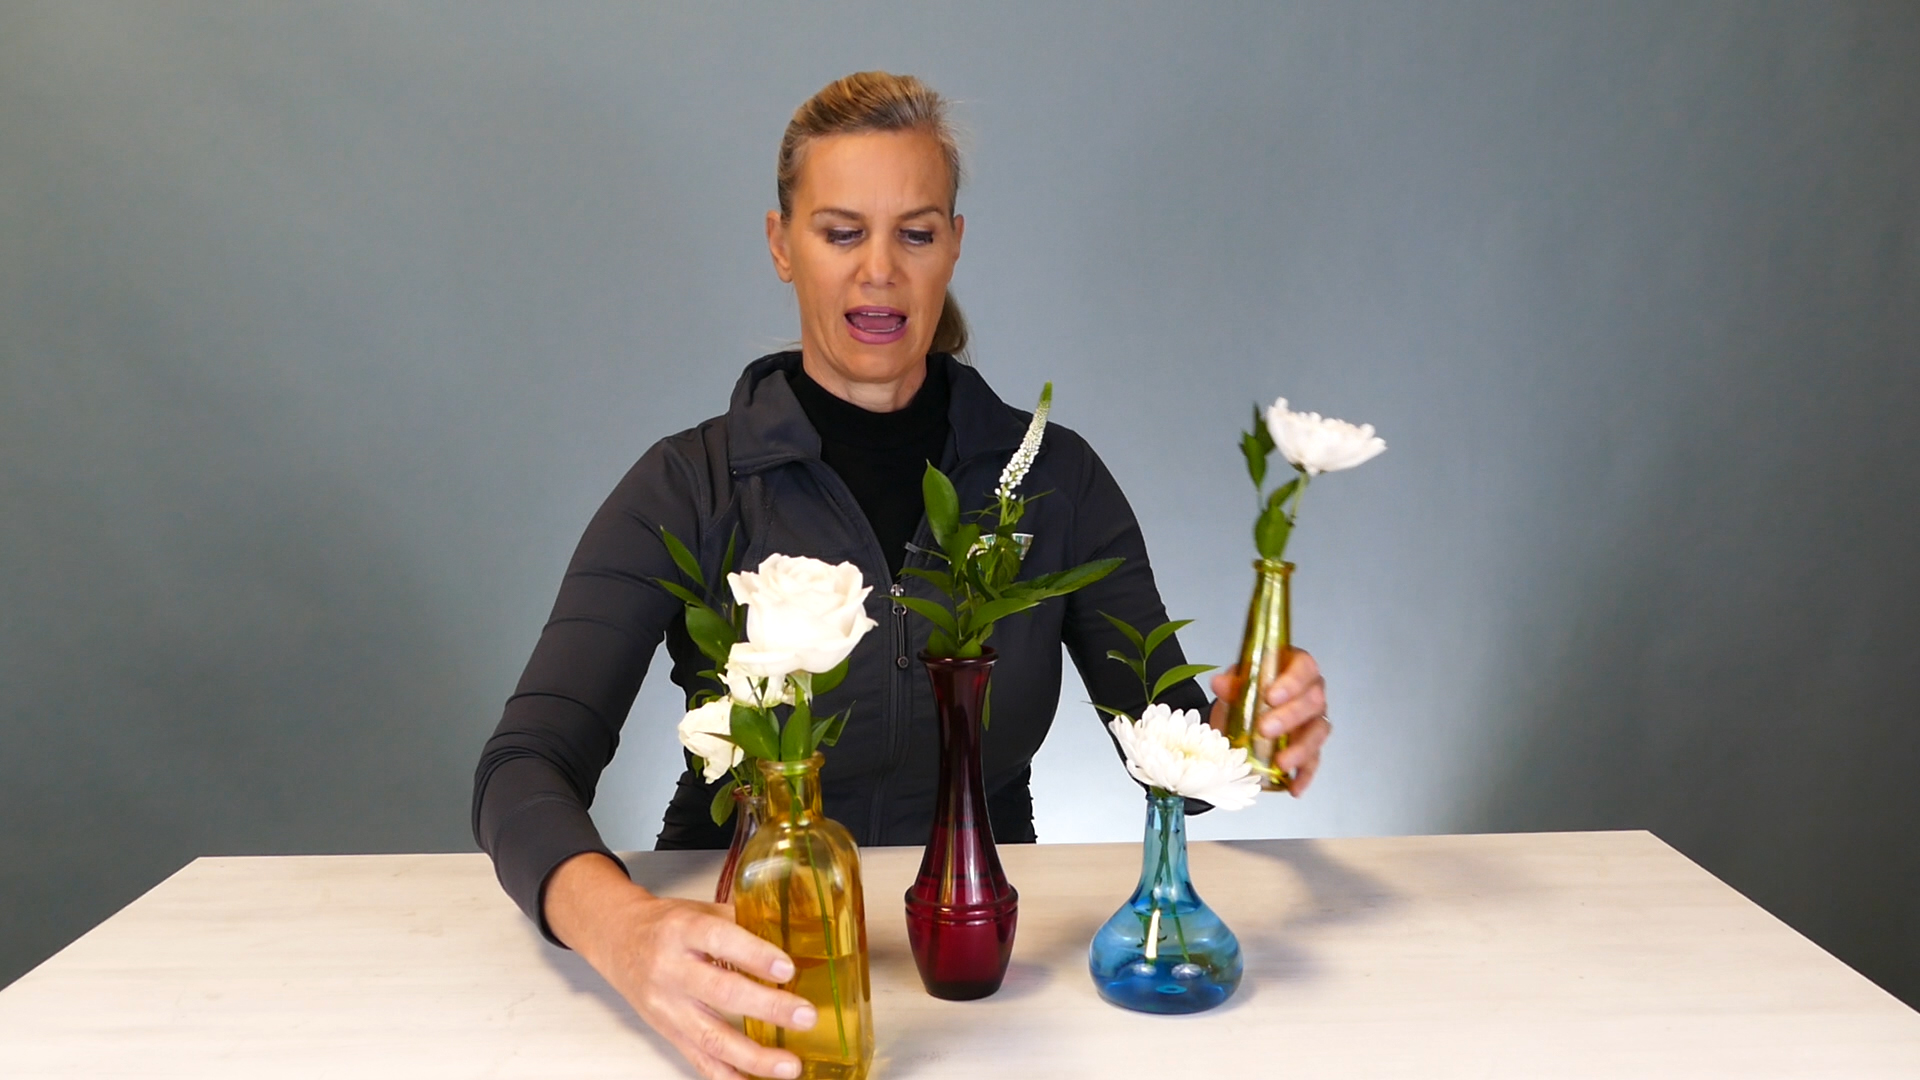 How to Gather Vases Effectively